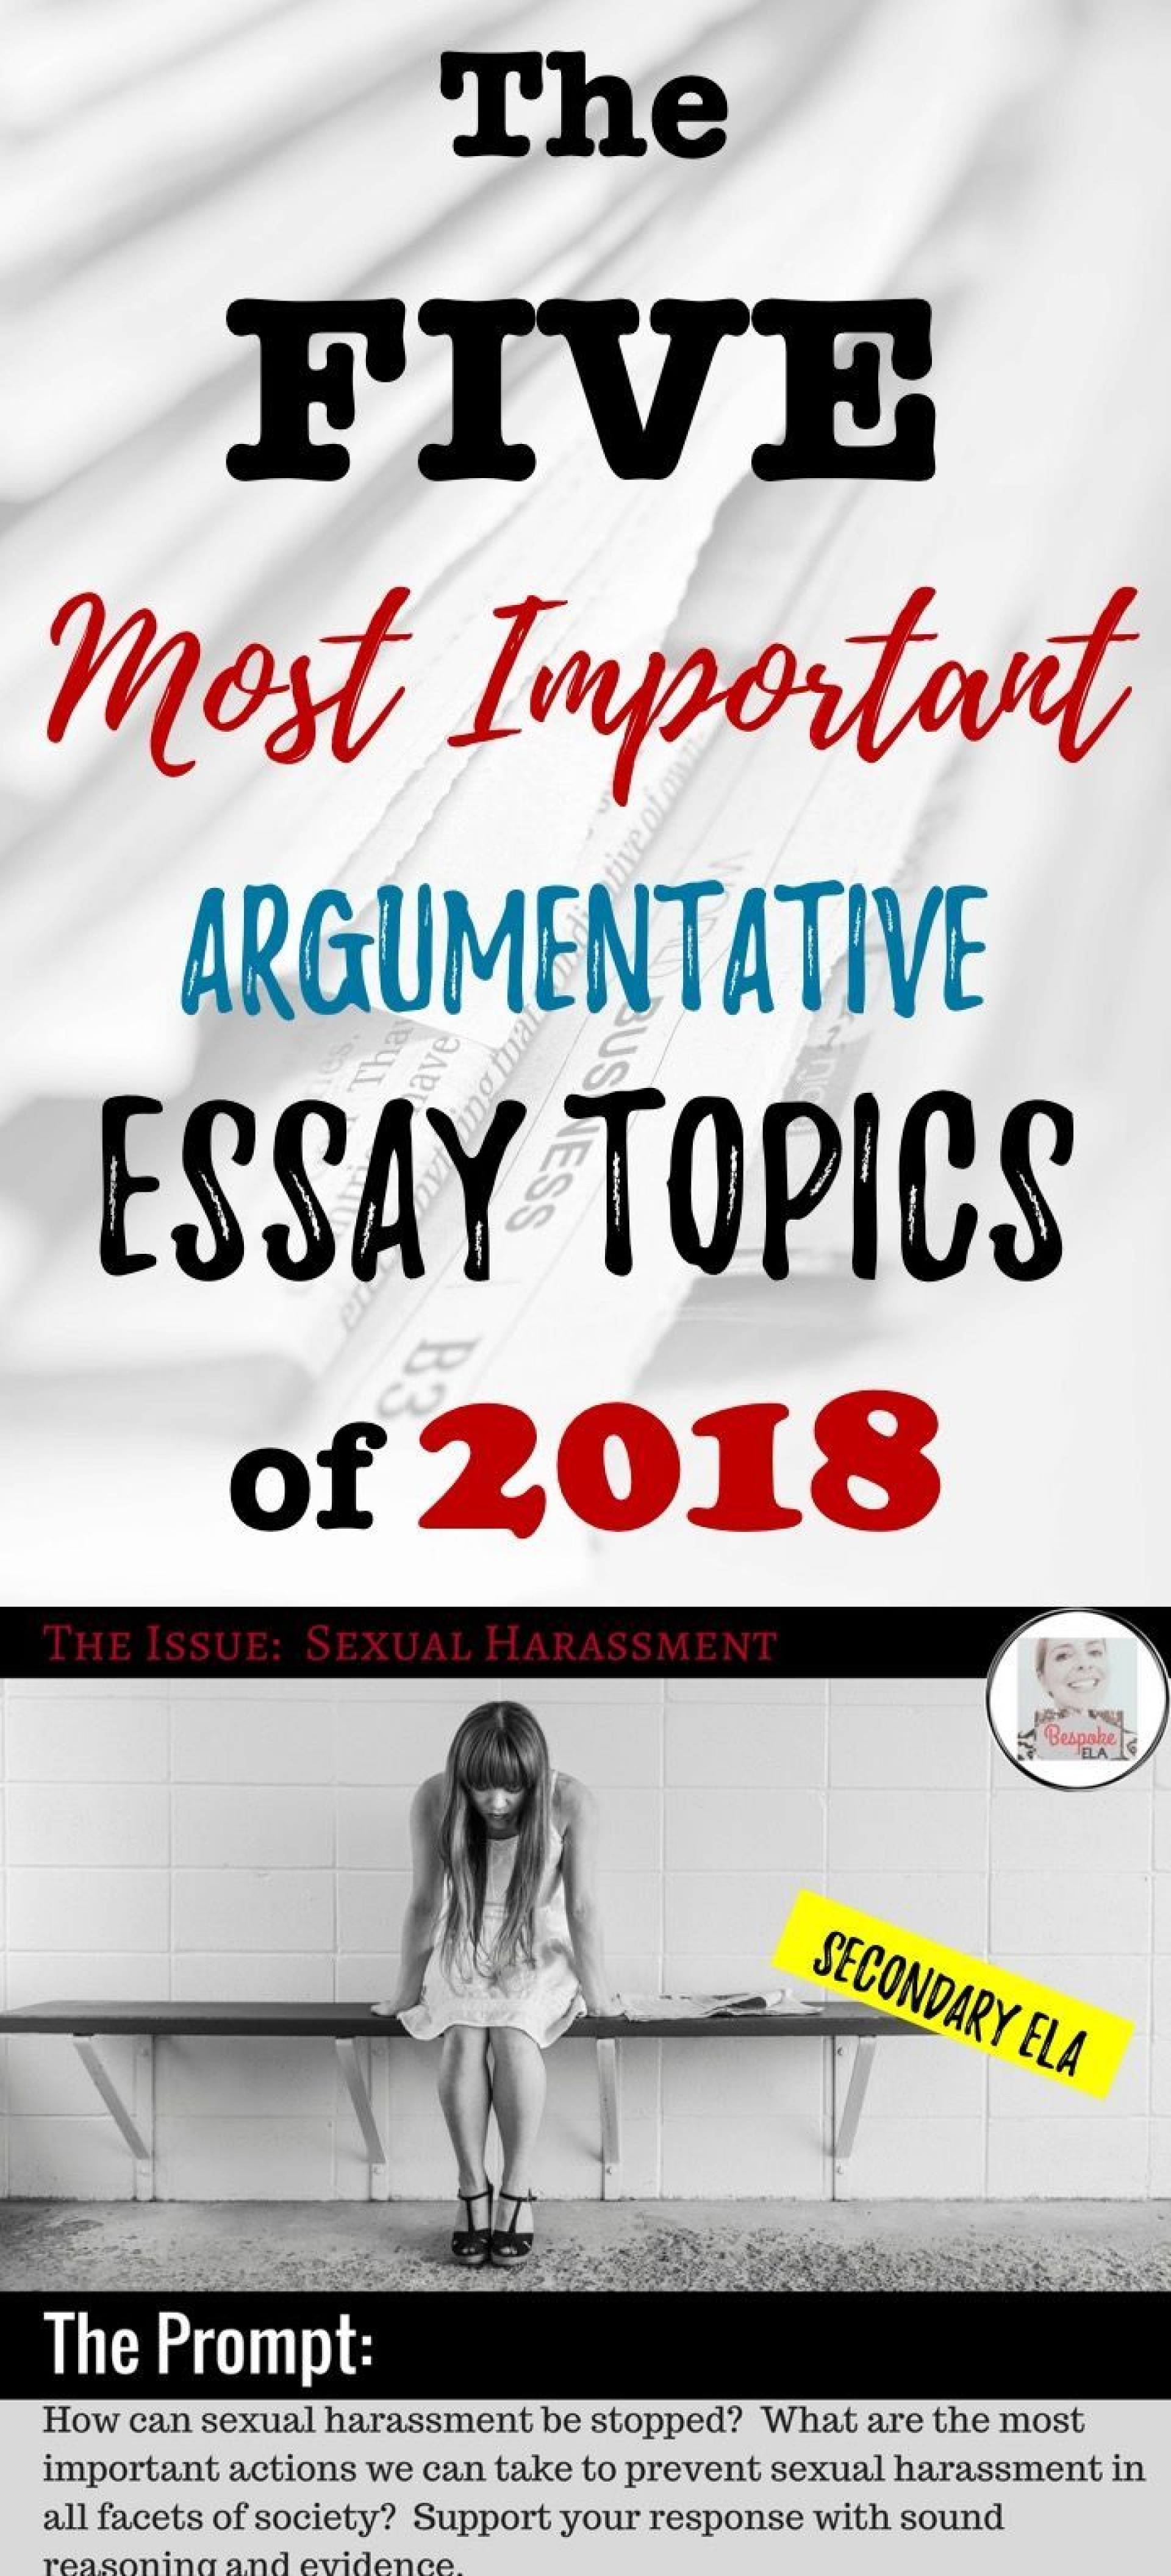 003 Research Paper Argumentative Essay Topics Remarkable 2018 In The Philippines Easy Middle School 1920